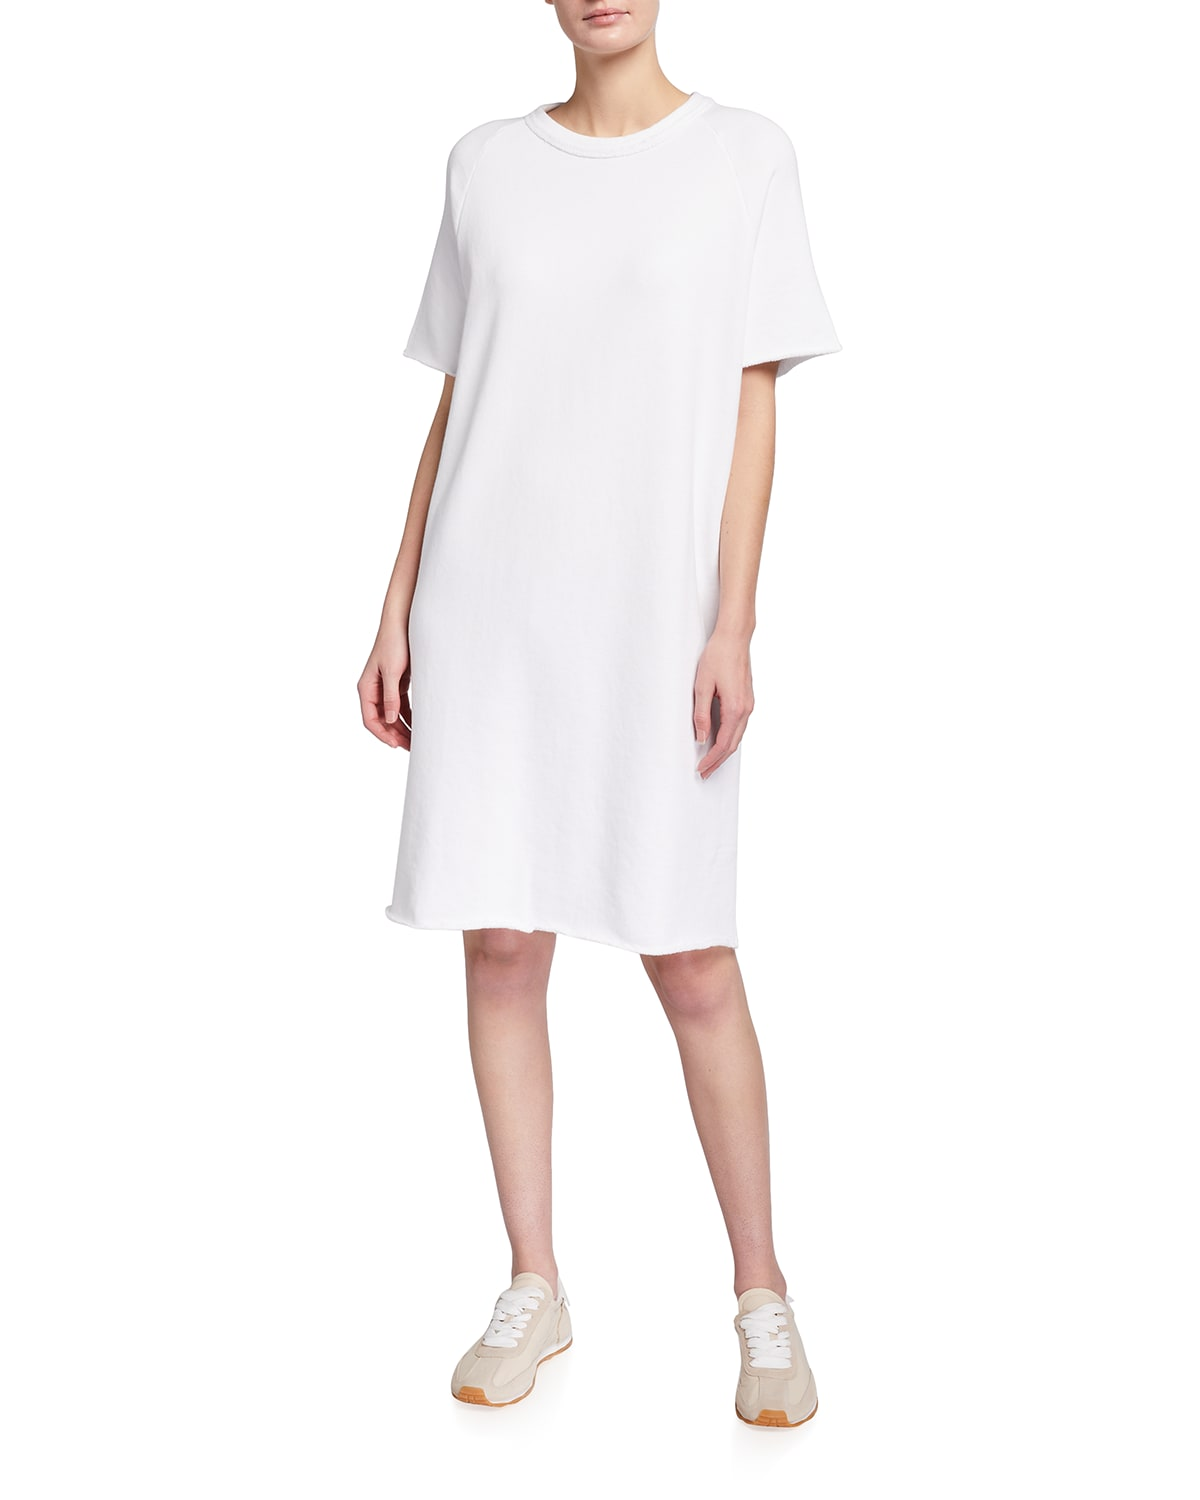 French Terry Organic Cotton Short-Sleeve Dress